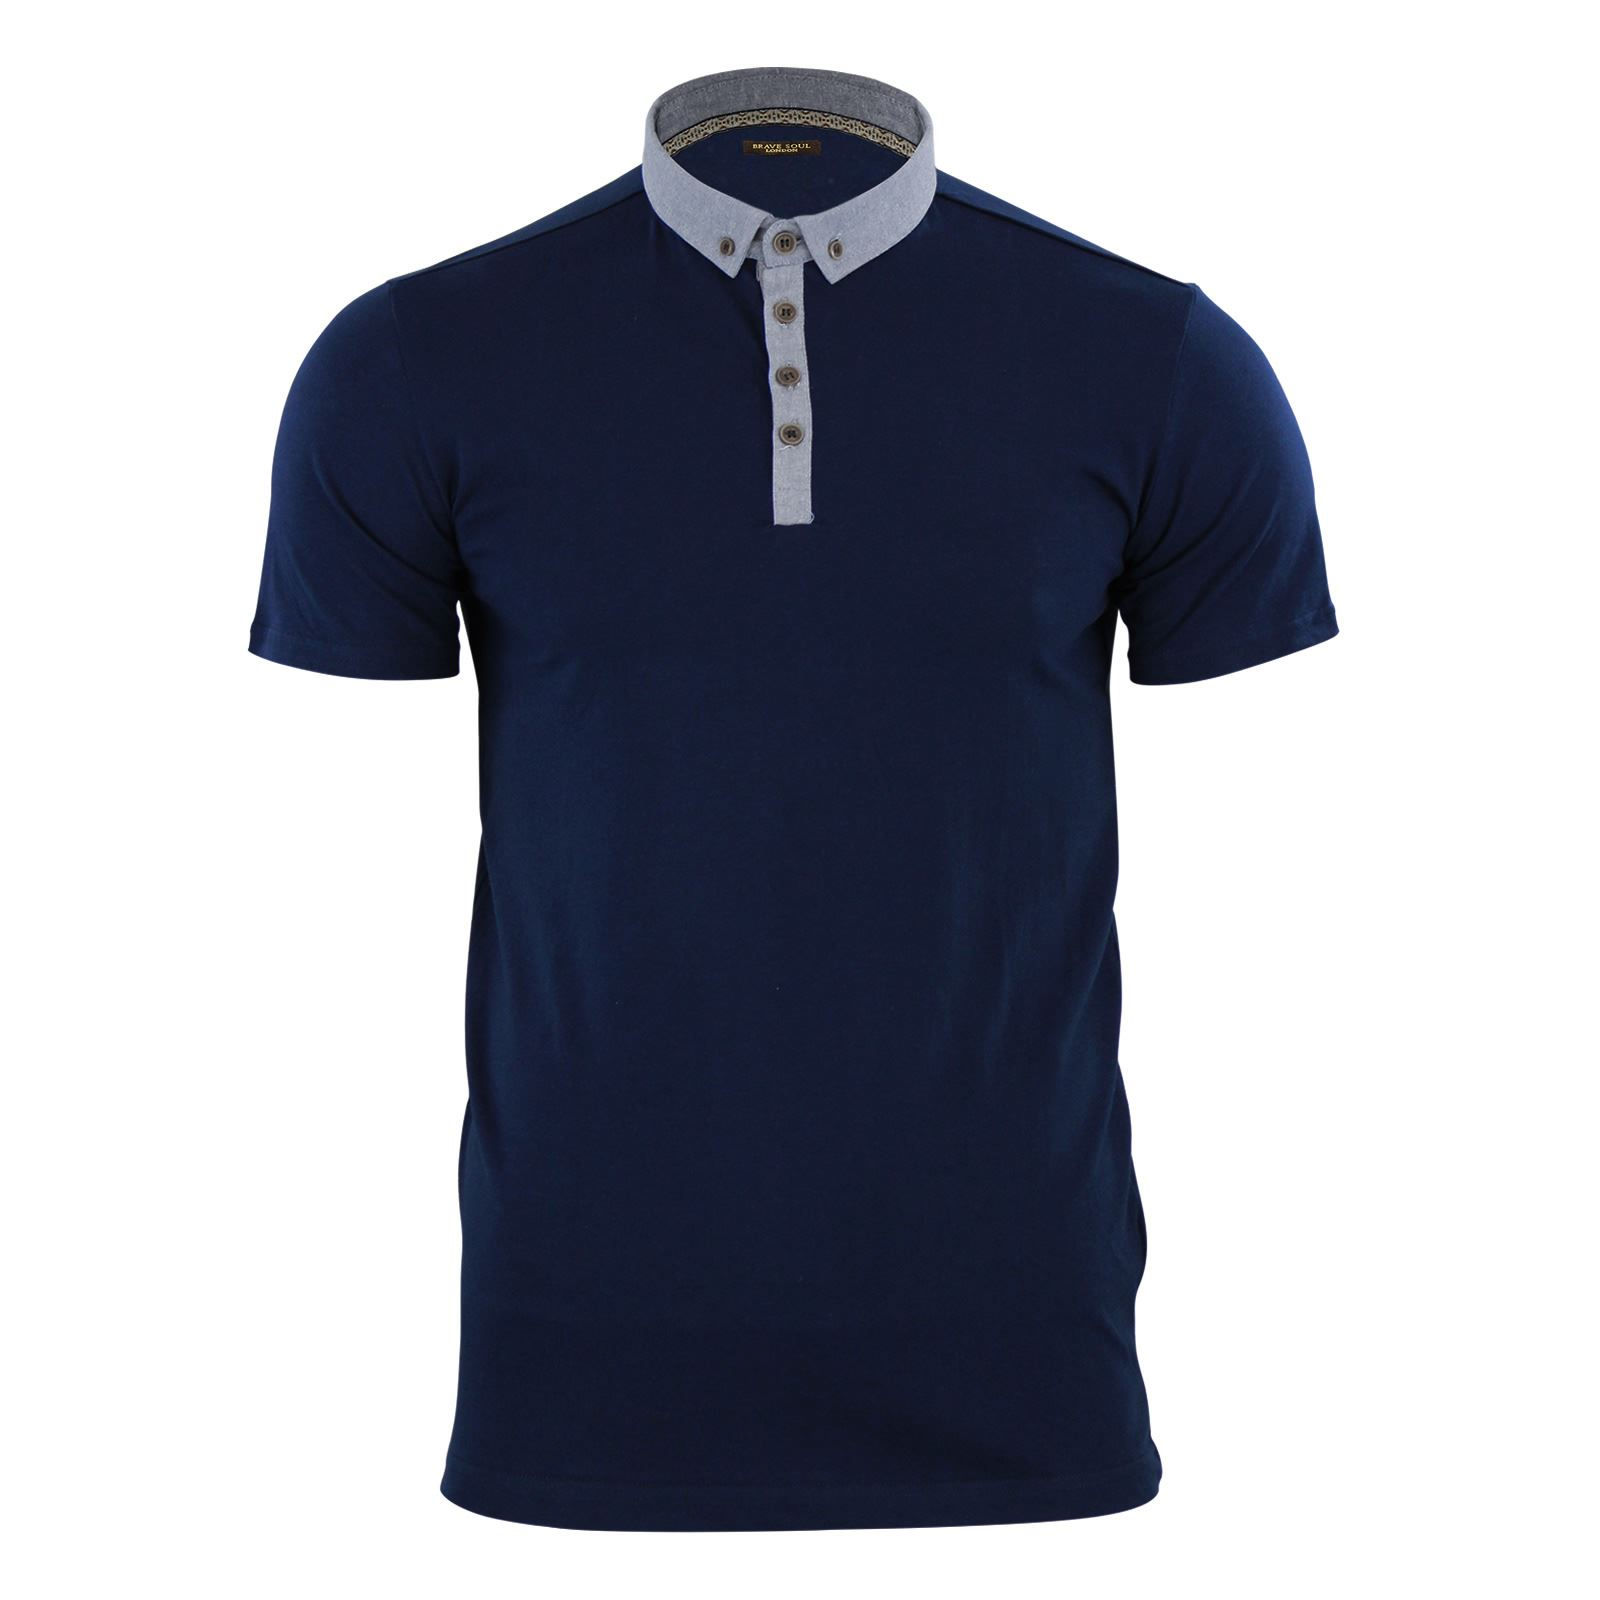 Shop collared cotton polo shirt at Neiman Marcus, where you will find free shipping on the latest in fashion from top designers.